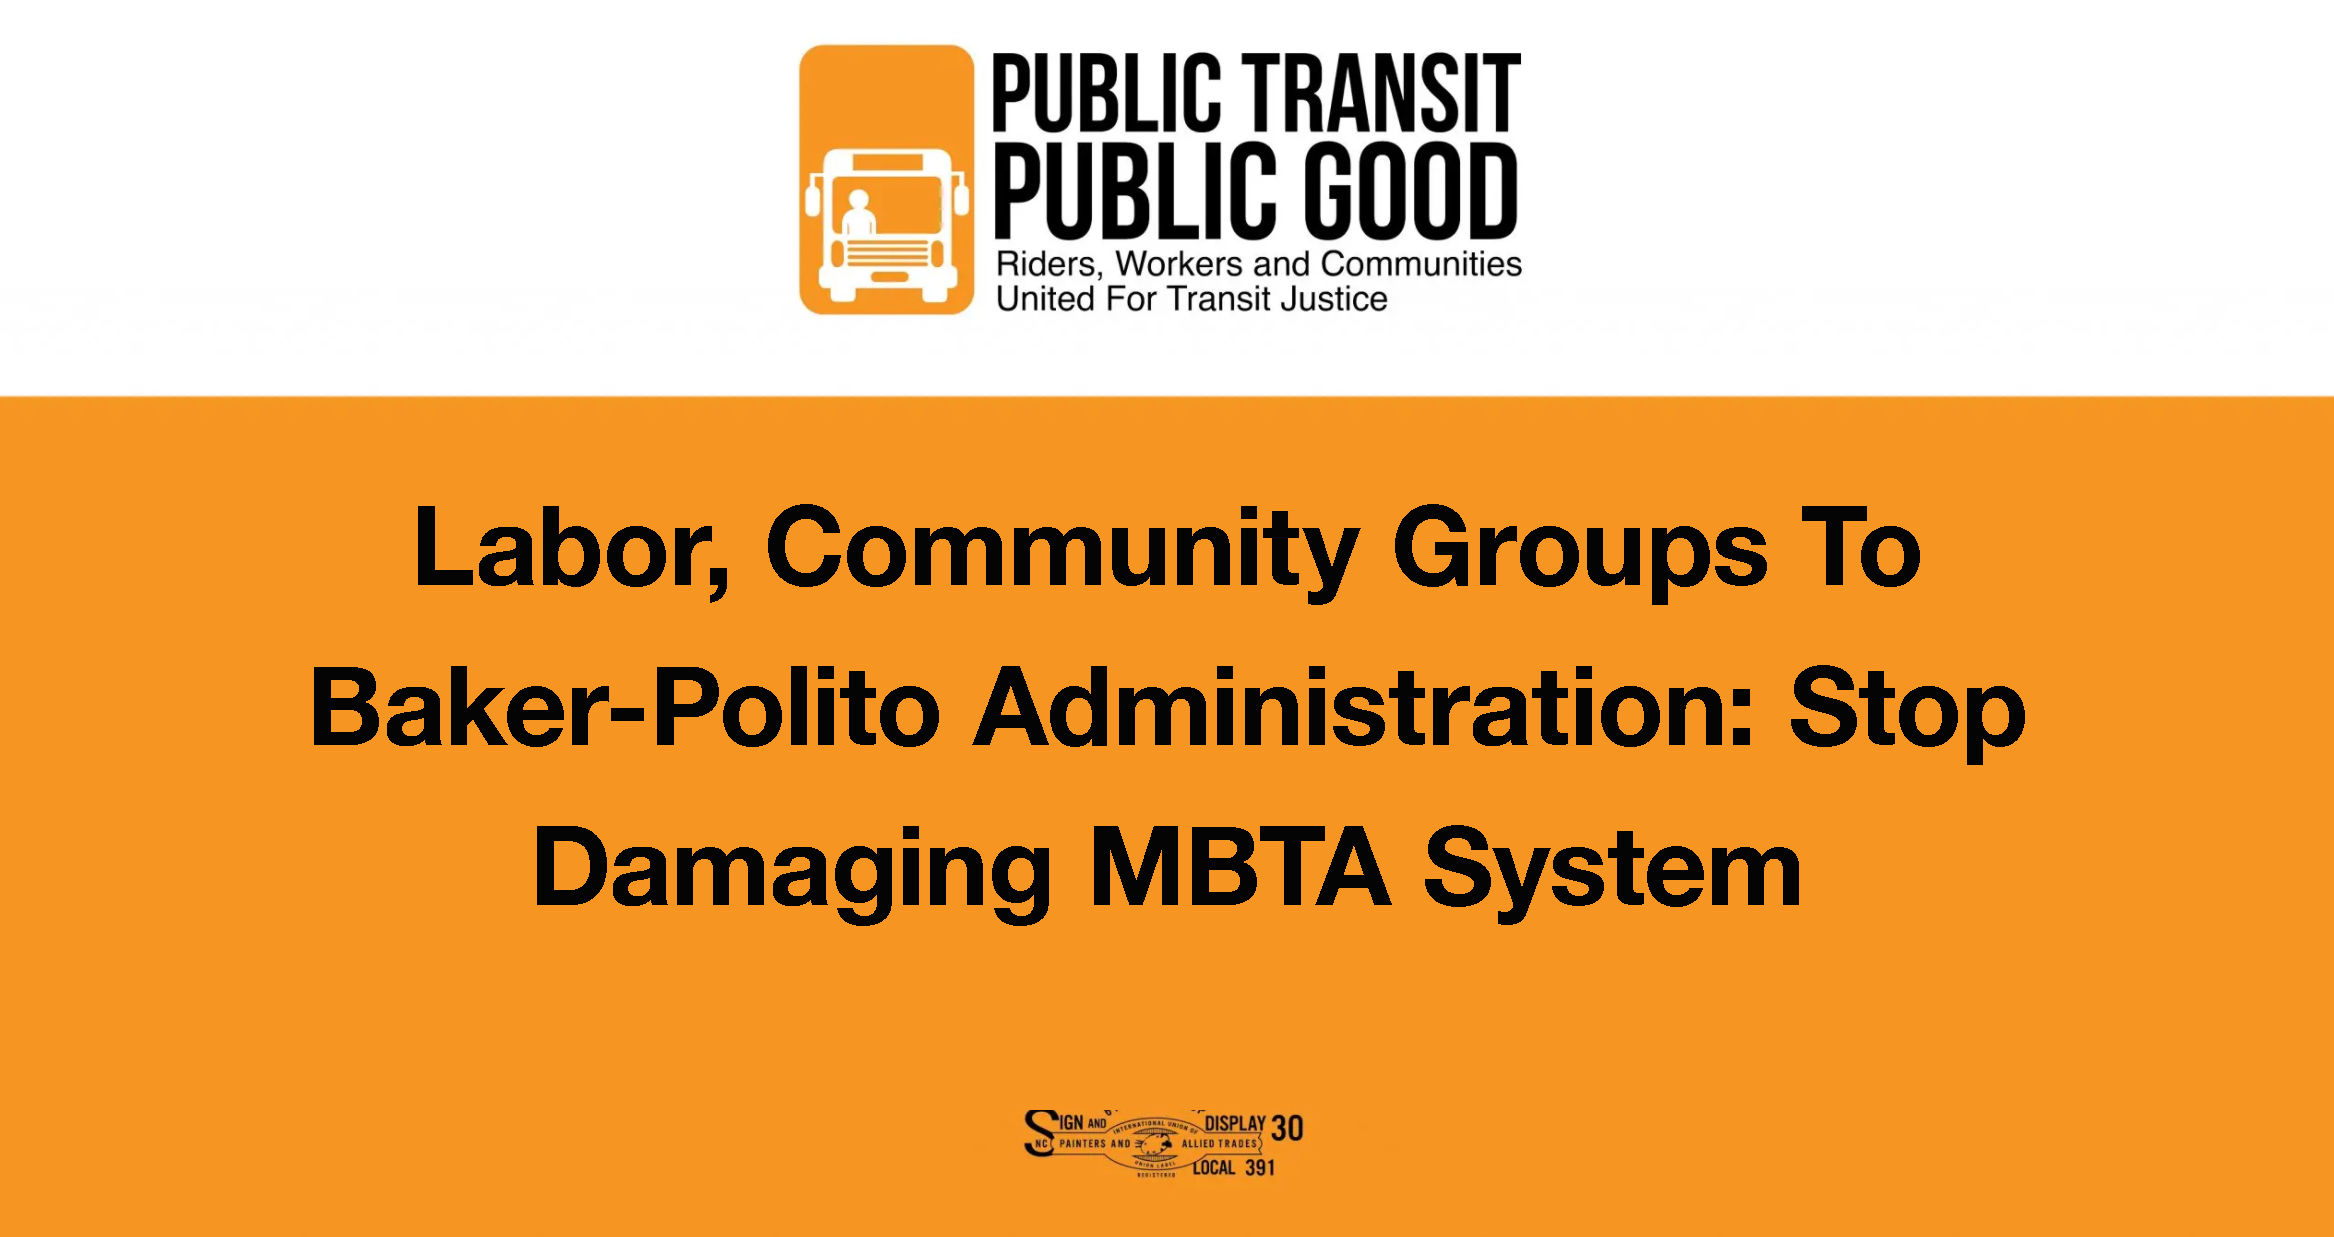 Labor, Community Groups To Baker-Polito Administration: Stop Damaging MBTA System